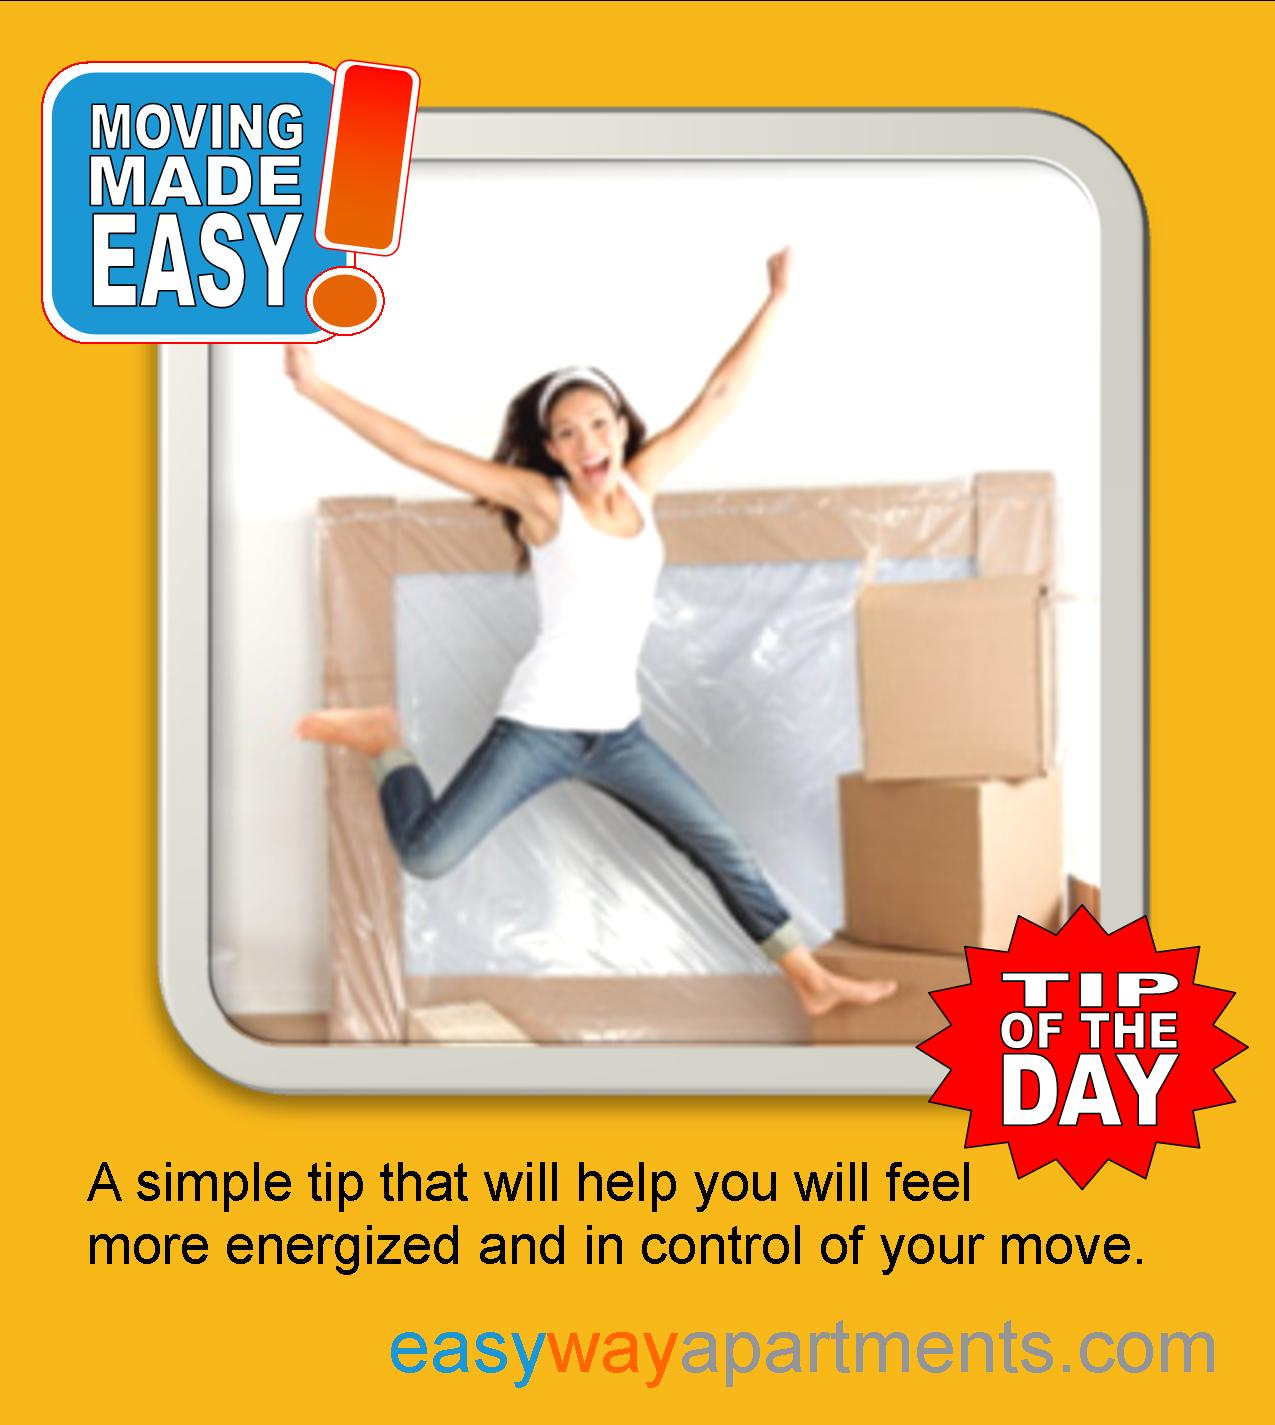 Moving Made Easy| How to stay in controll and energized when you move